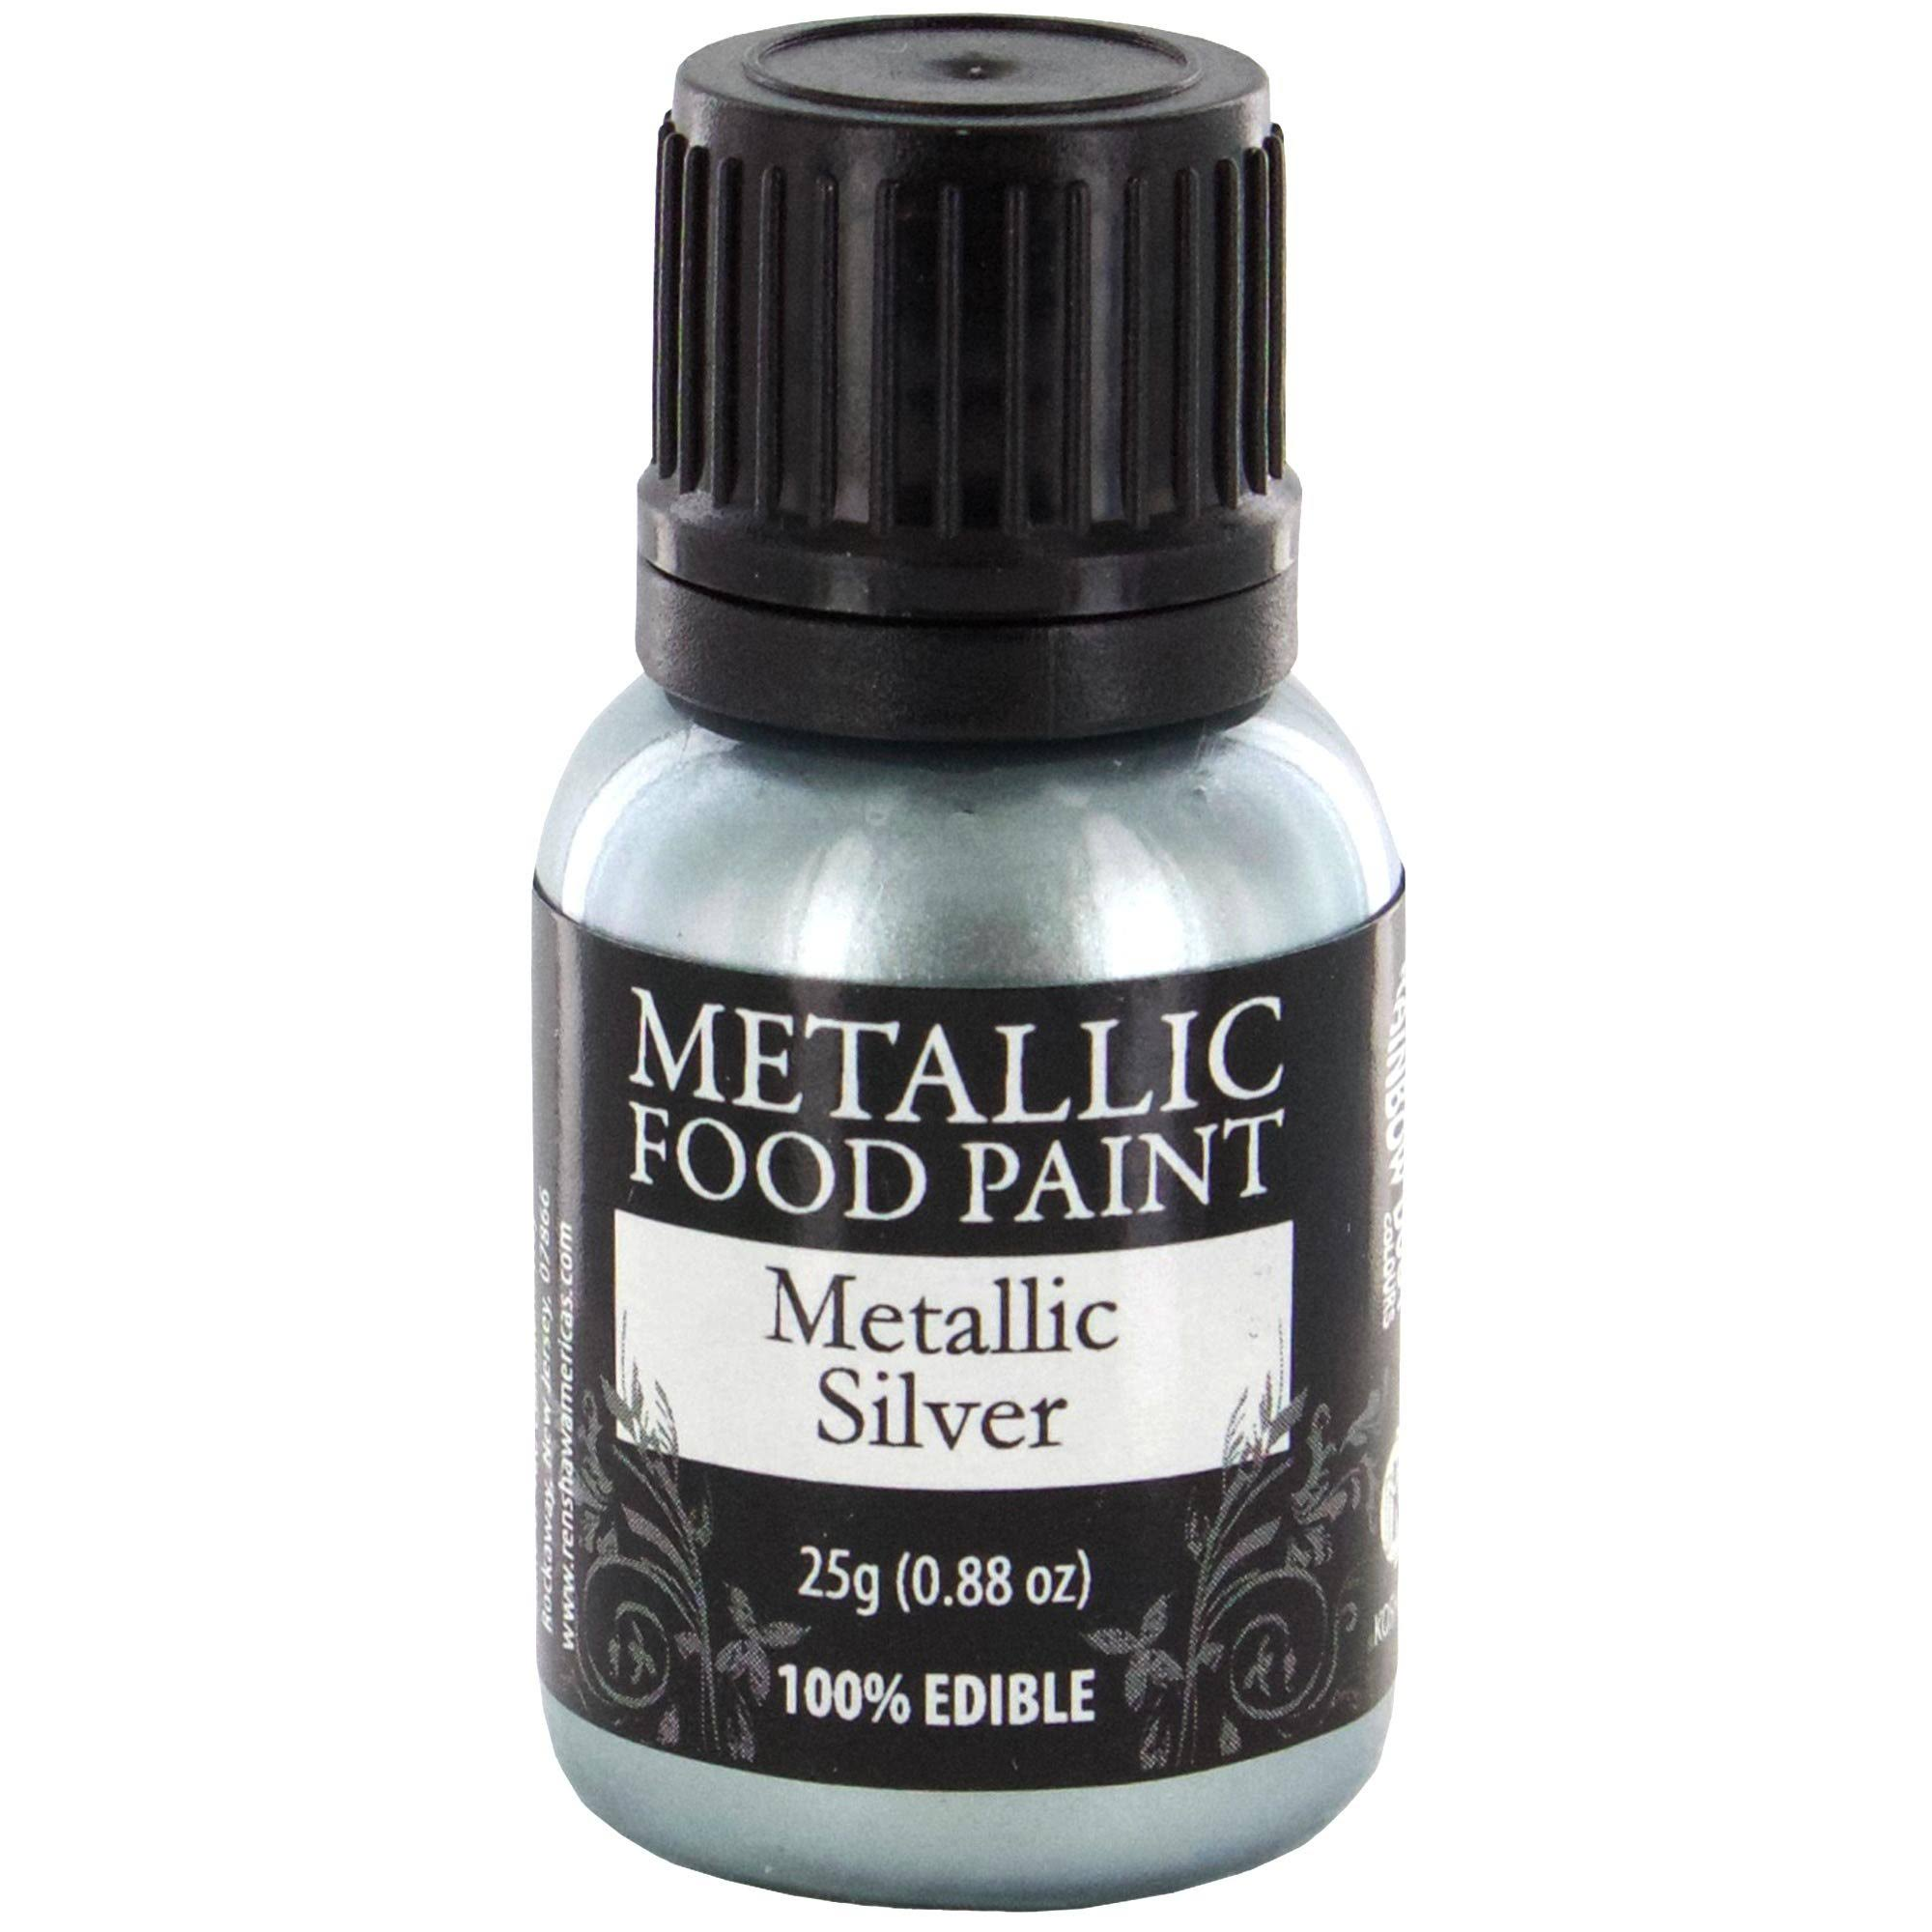 Rainbow Dust Metallic Food Paint - Metallic Silver, 25g